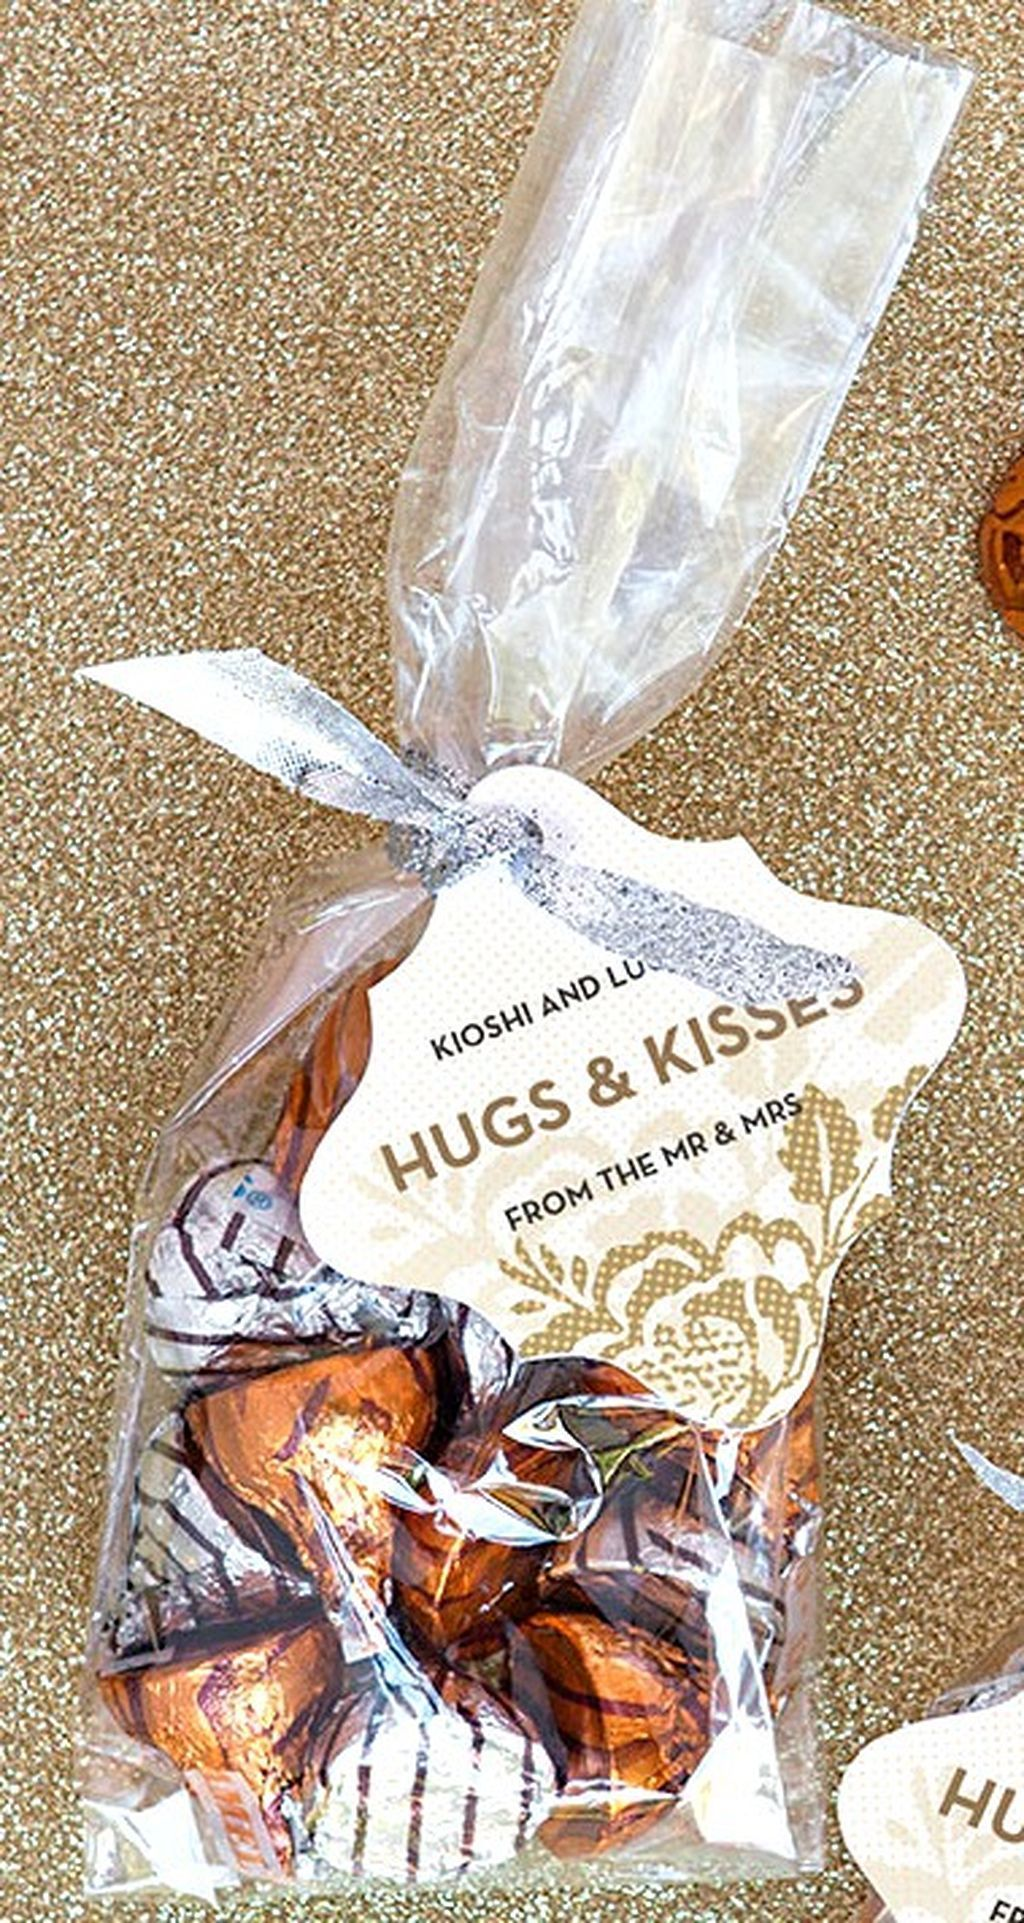 10 the cheapest wedding favors ideas 12   Favors, Weddings and Wedding